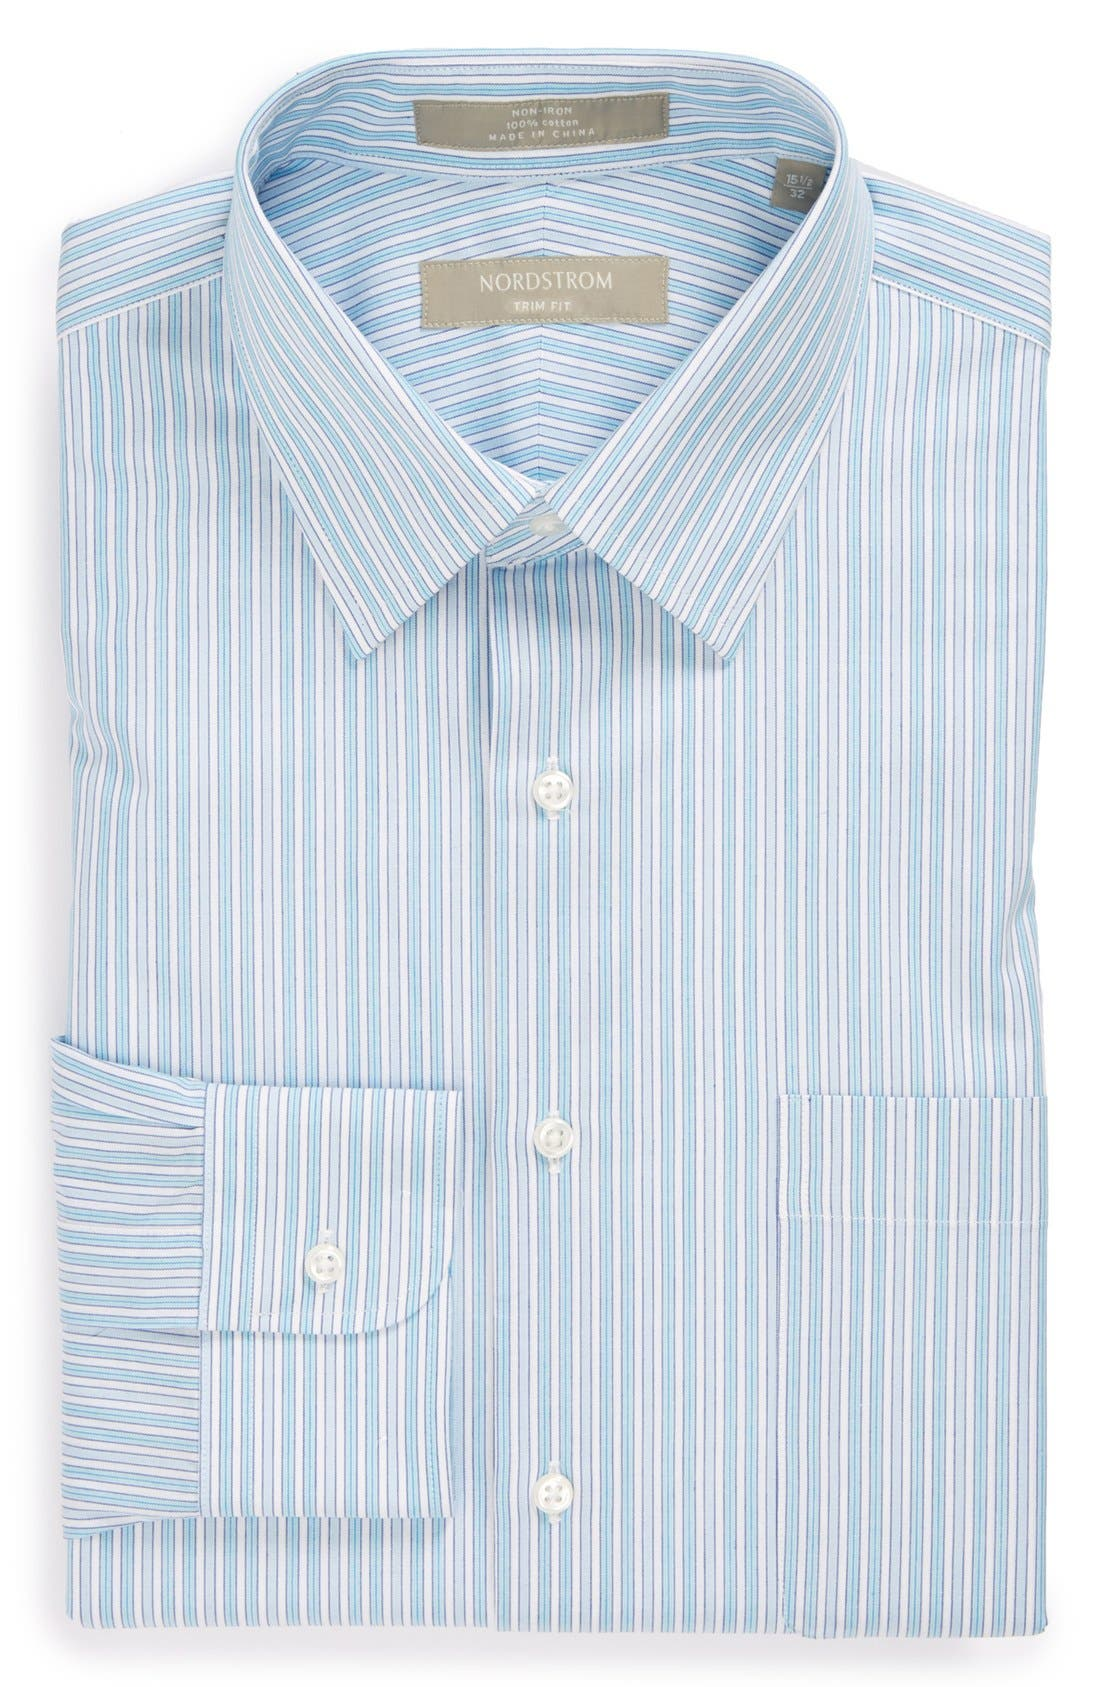 Main Image - Nordstrom Smartcare™ Wrinkle Free Trim Fit Stripe Dress Shirt